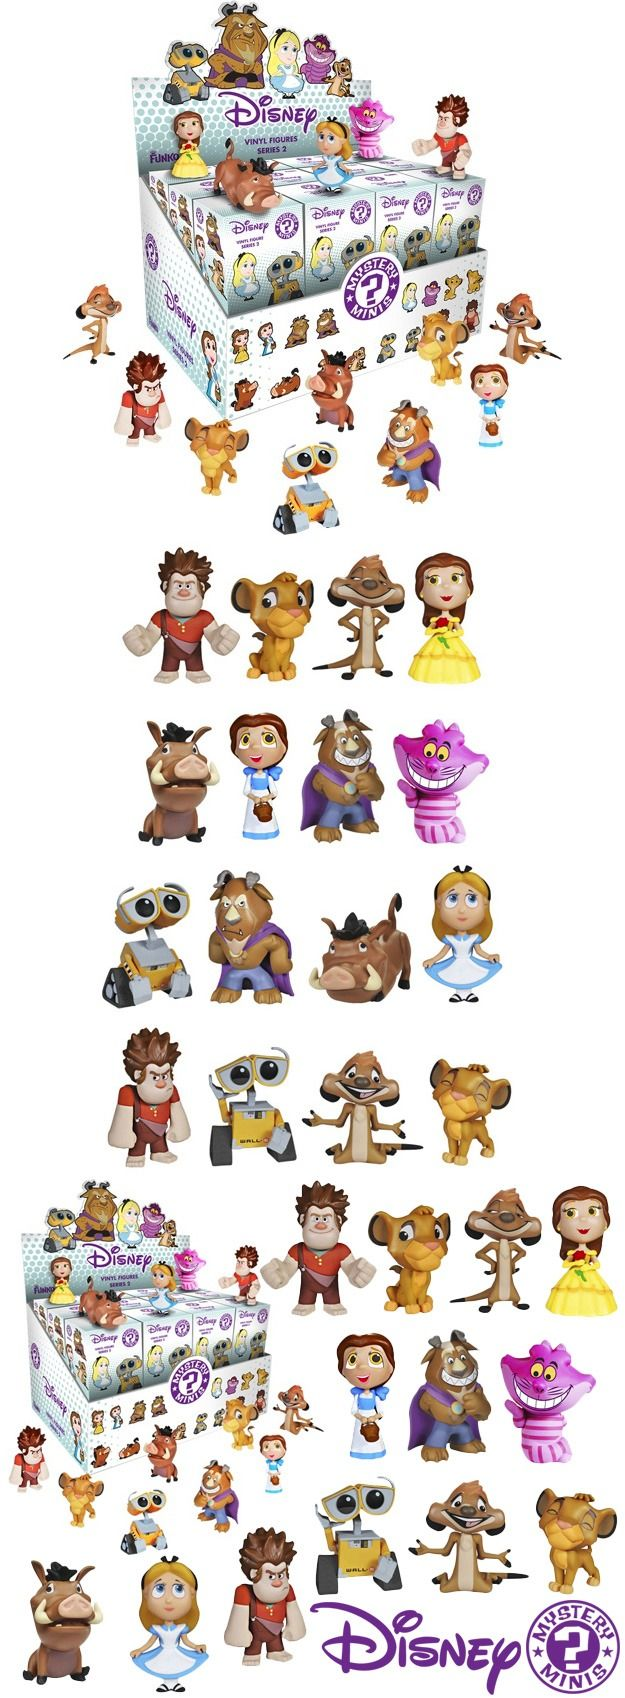 Disney Series 2 Mystery Minis Vinyl Figure Blind Boxes by Funko